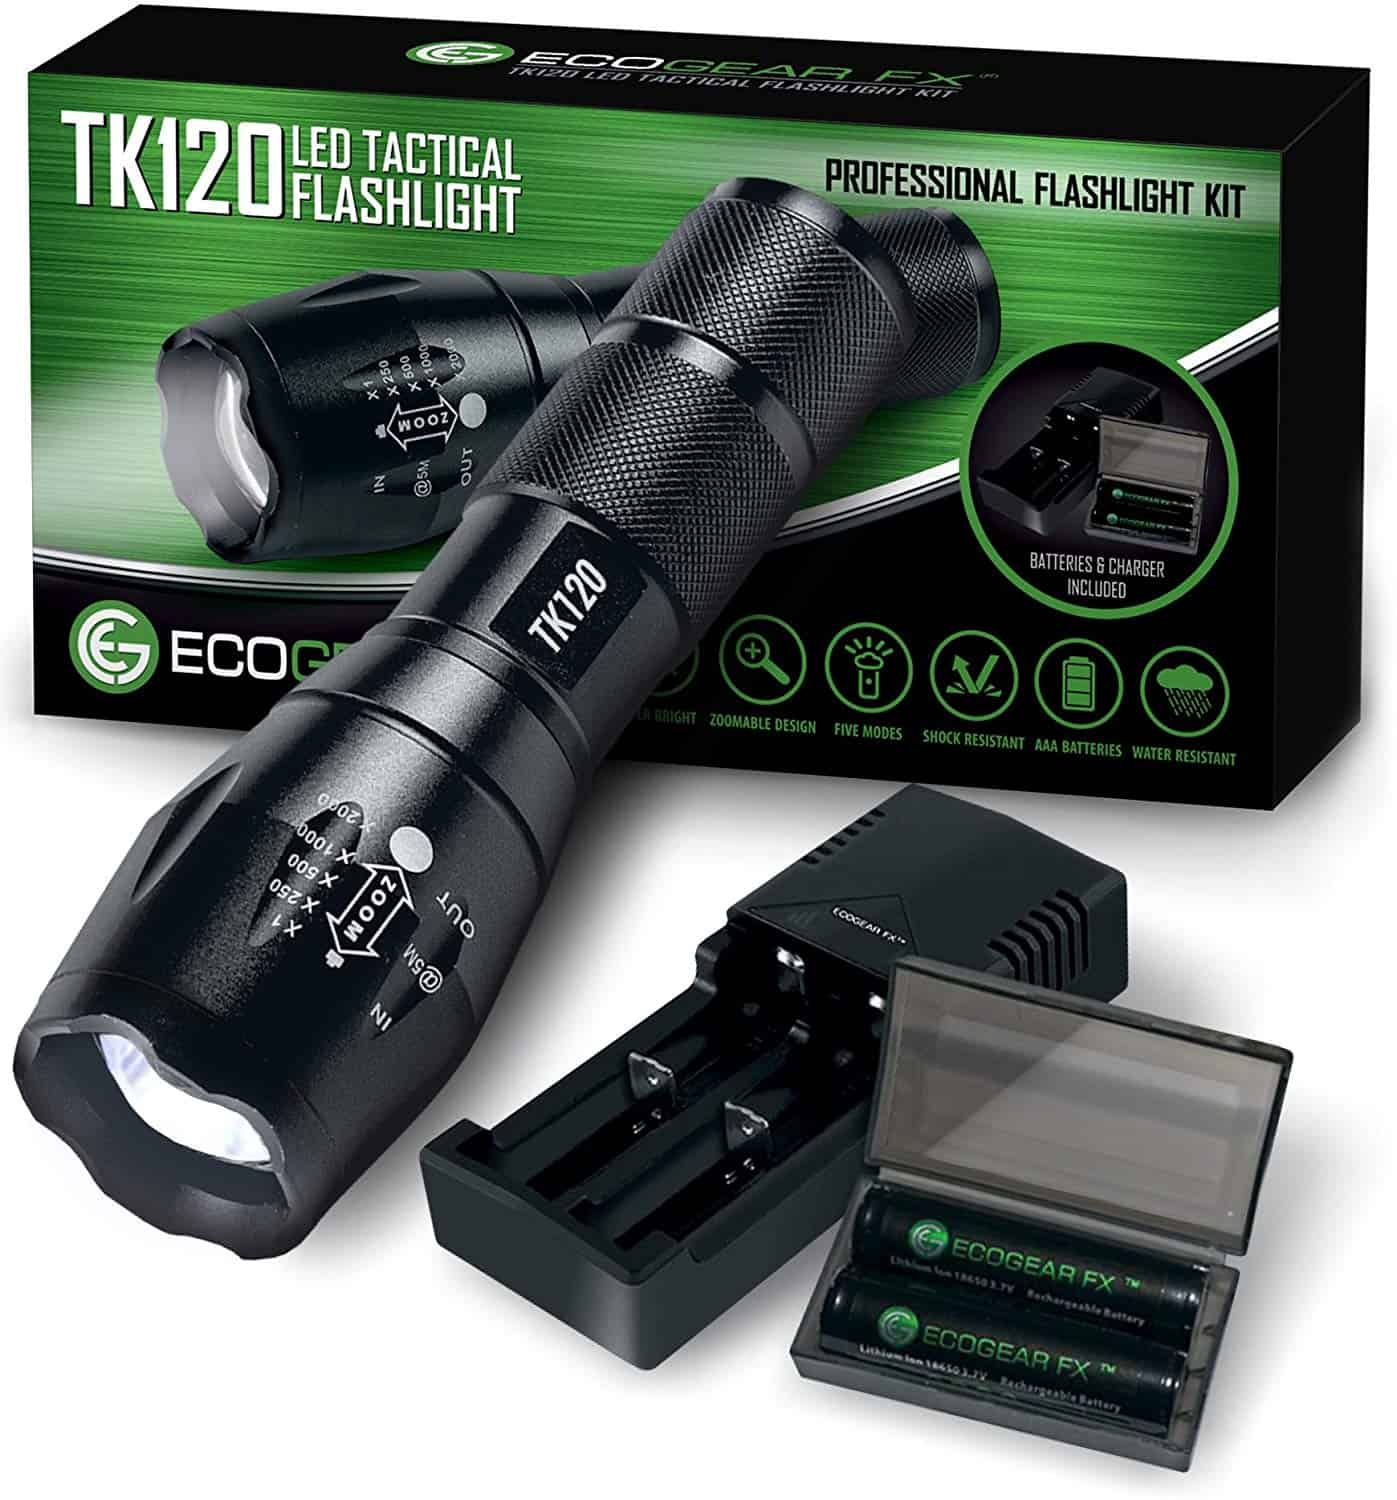 Complete LED Tactical Flashlight Kit - EcoGear FX TK120: Handheld Light with 5 Light Modes, Water Resistant, Zoomable - Includes Rechargeable Batteries and Battery Charger